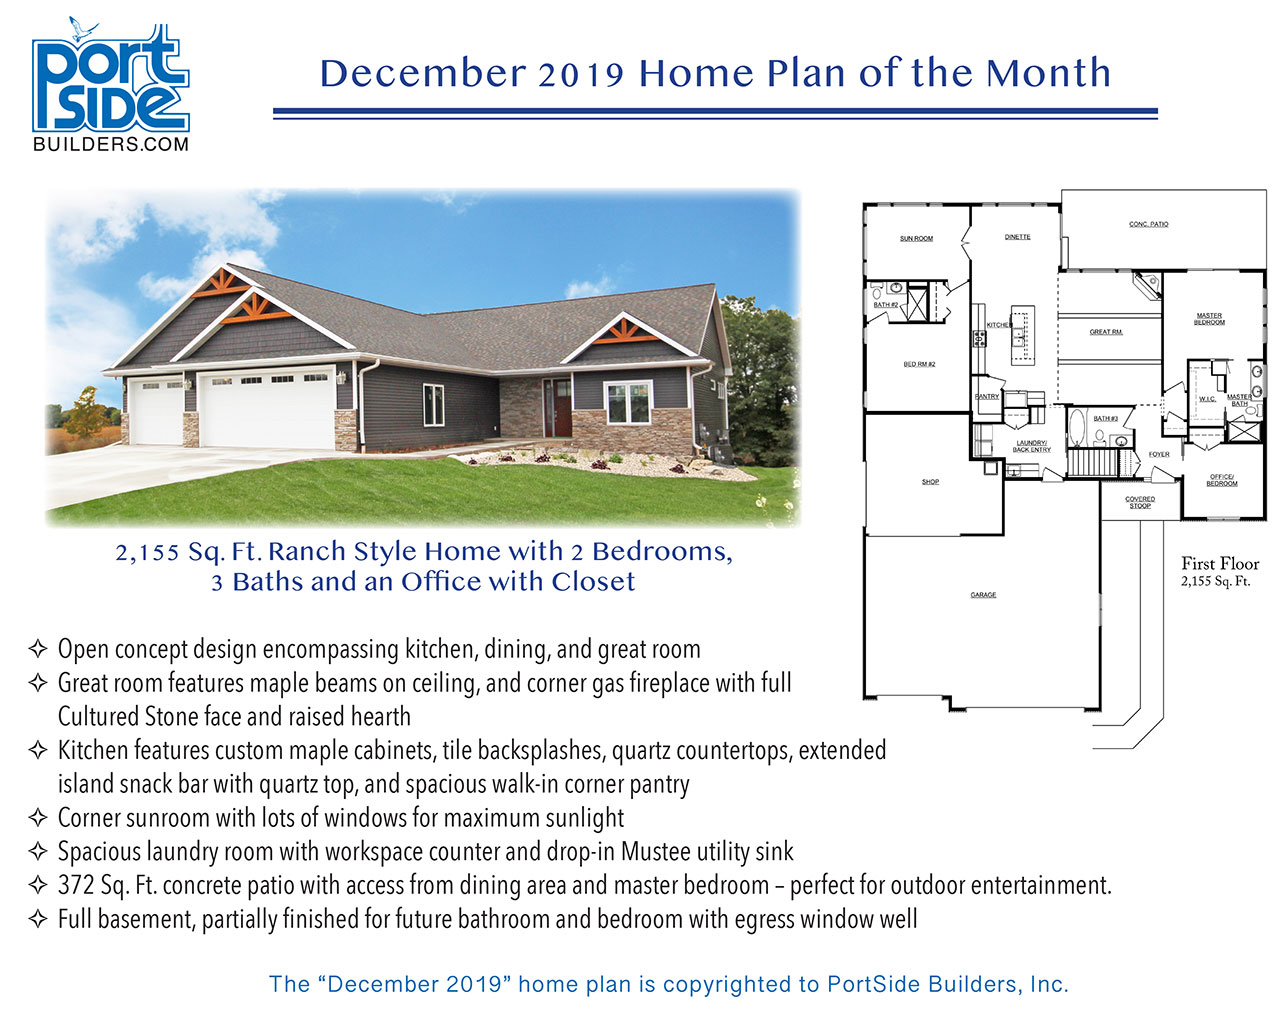 Home Plan of the Month - PortSide Builders • New home ideas Ranch House Design Ideas Commercial Office on commercial signage ideas, office space planning ideas, school office layout ideas, commercial office landscaping, commercial floor design, commercial garden ideas, office desk ideas, commercial office signs, commercial decoration ideas, industrial office ideas, office renovation ideas, commercial office inspiration, commercial holiday decorating ideas, commercial office buildings, office signage ideas, commercial modern sofa, commercial insurance ideas, commercial office keurig, accessorizing ideas, commercial photography ideas,